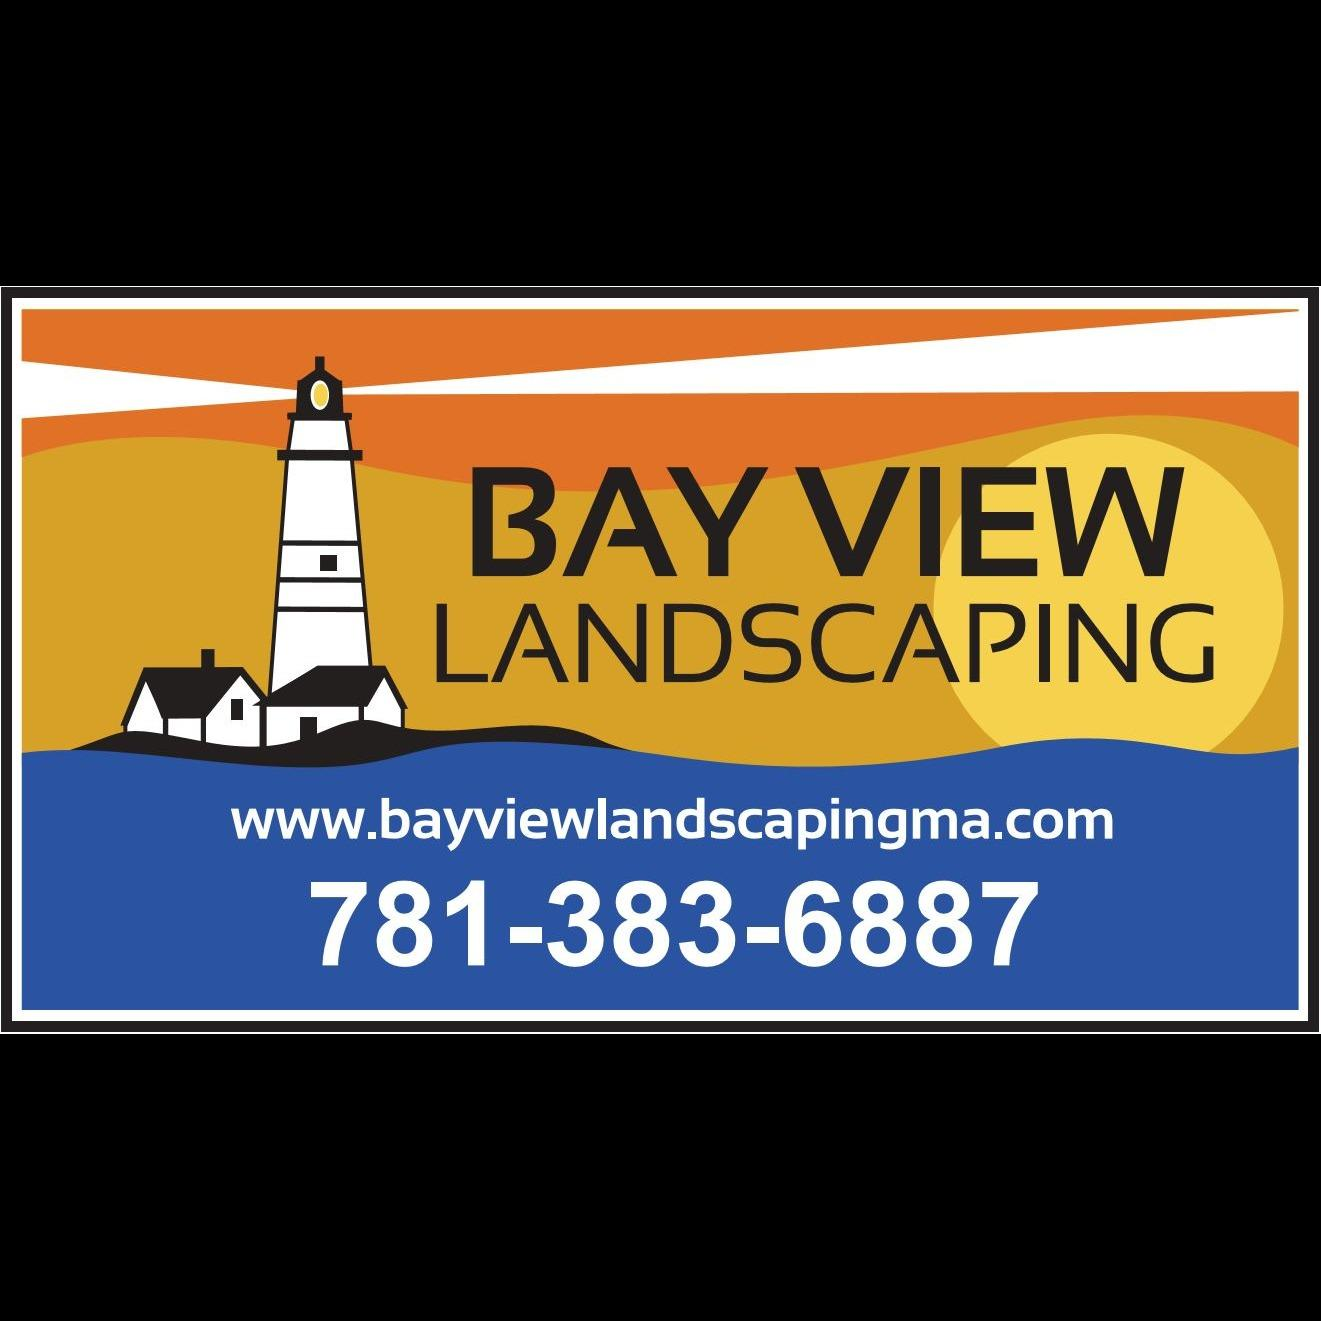 Bay View Landscaping